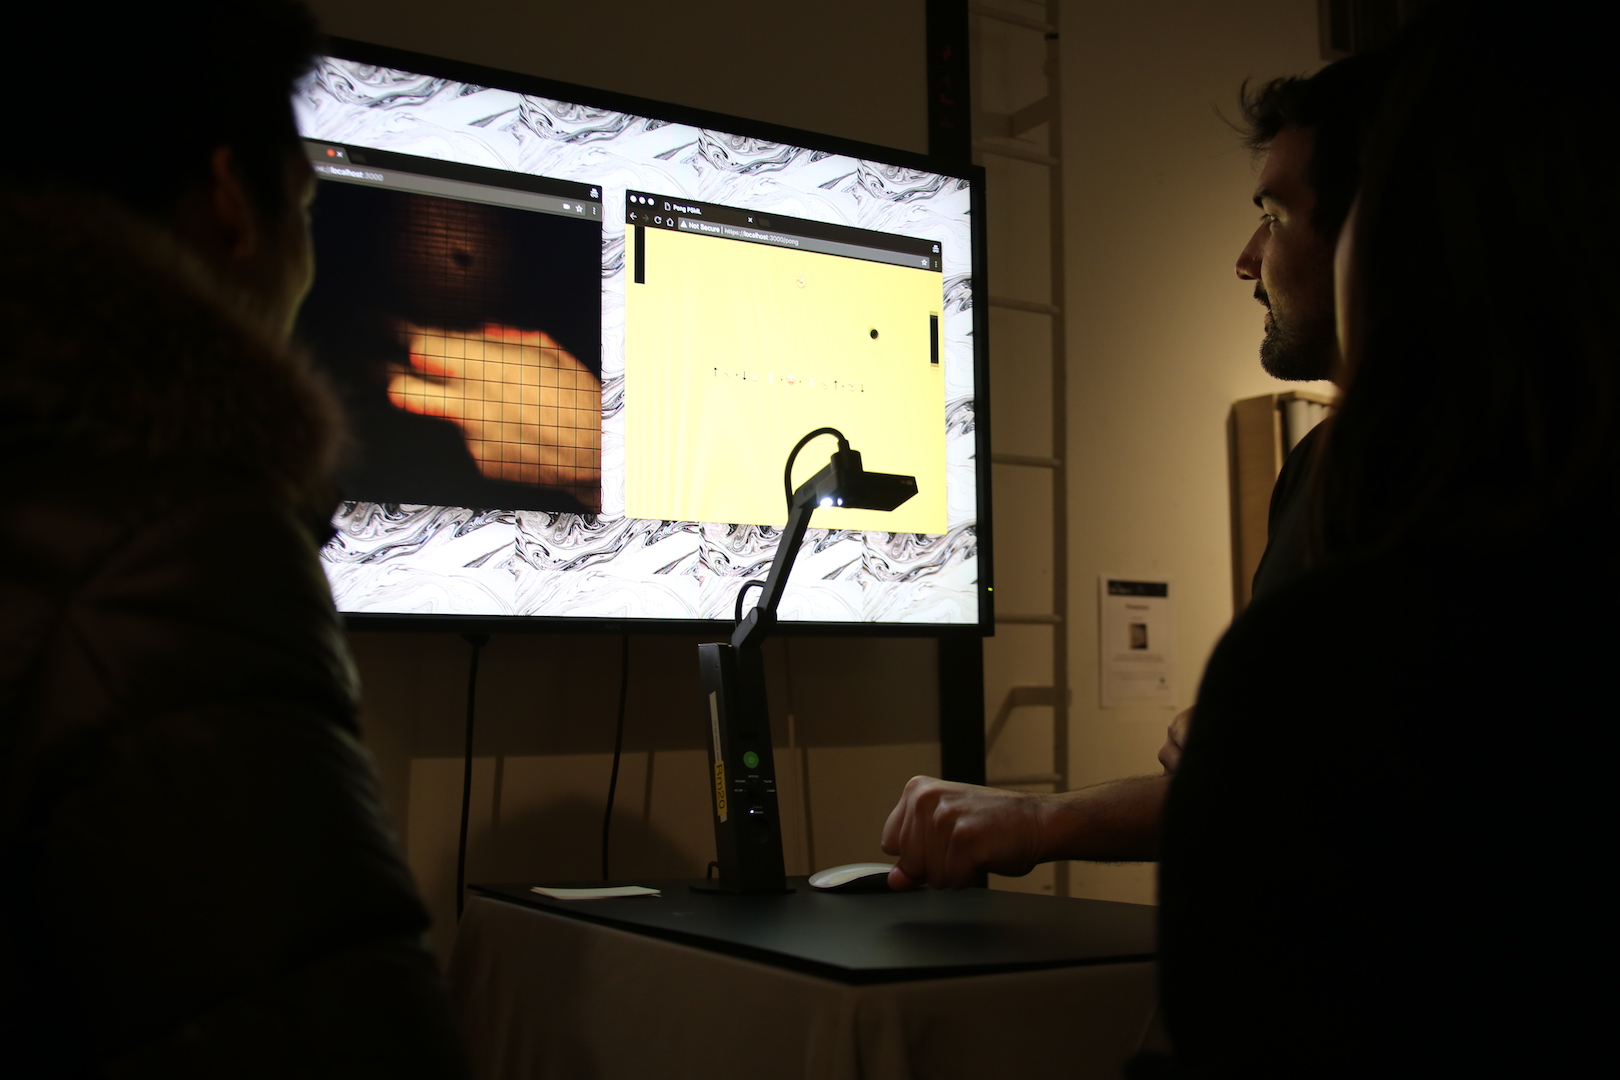 a person's hand that is projected onto a screen